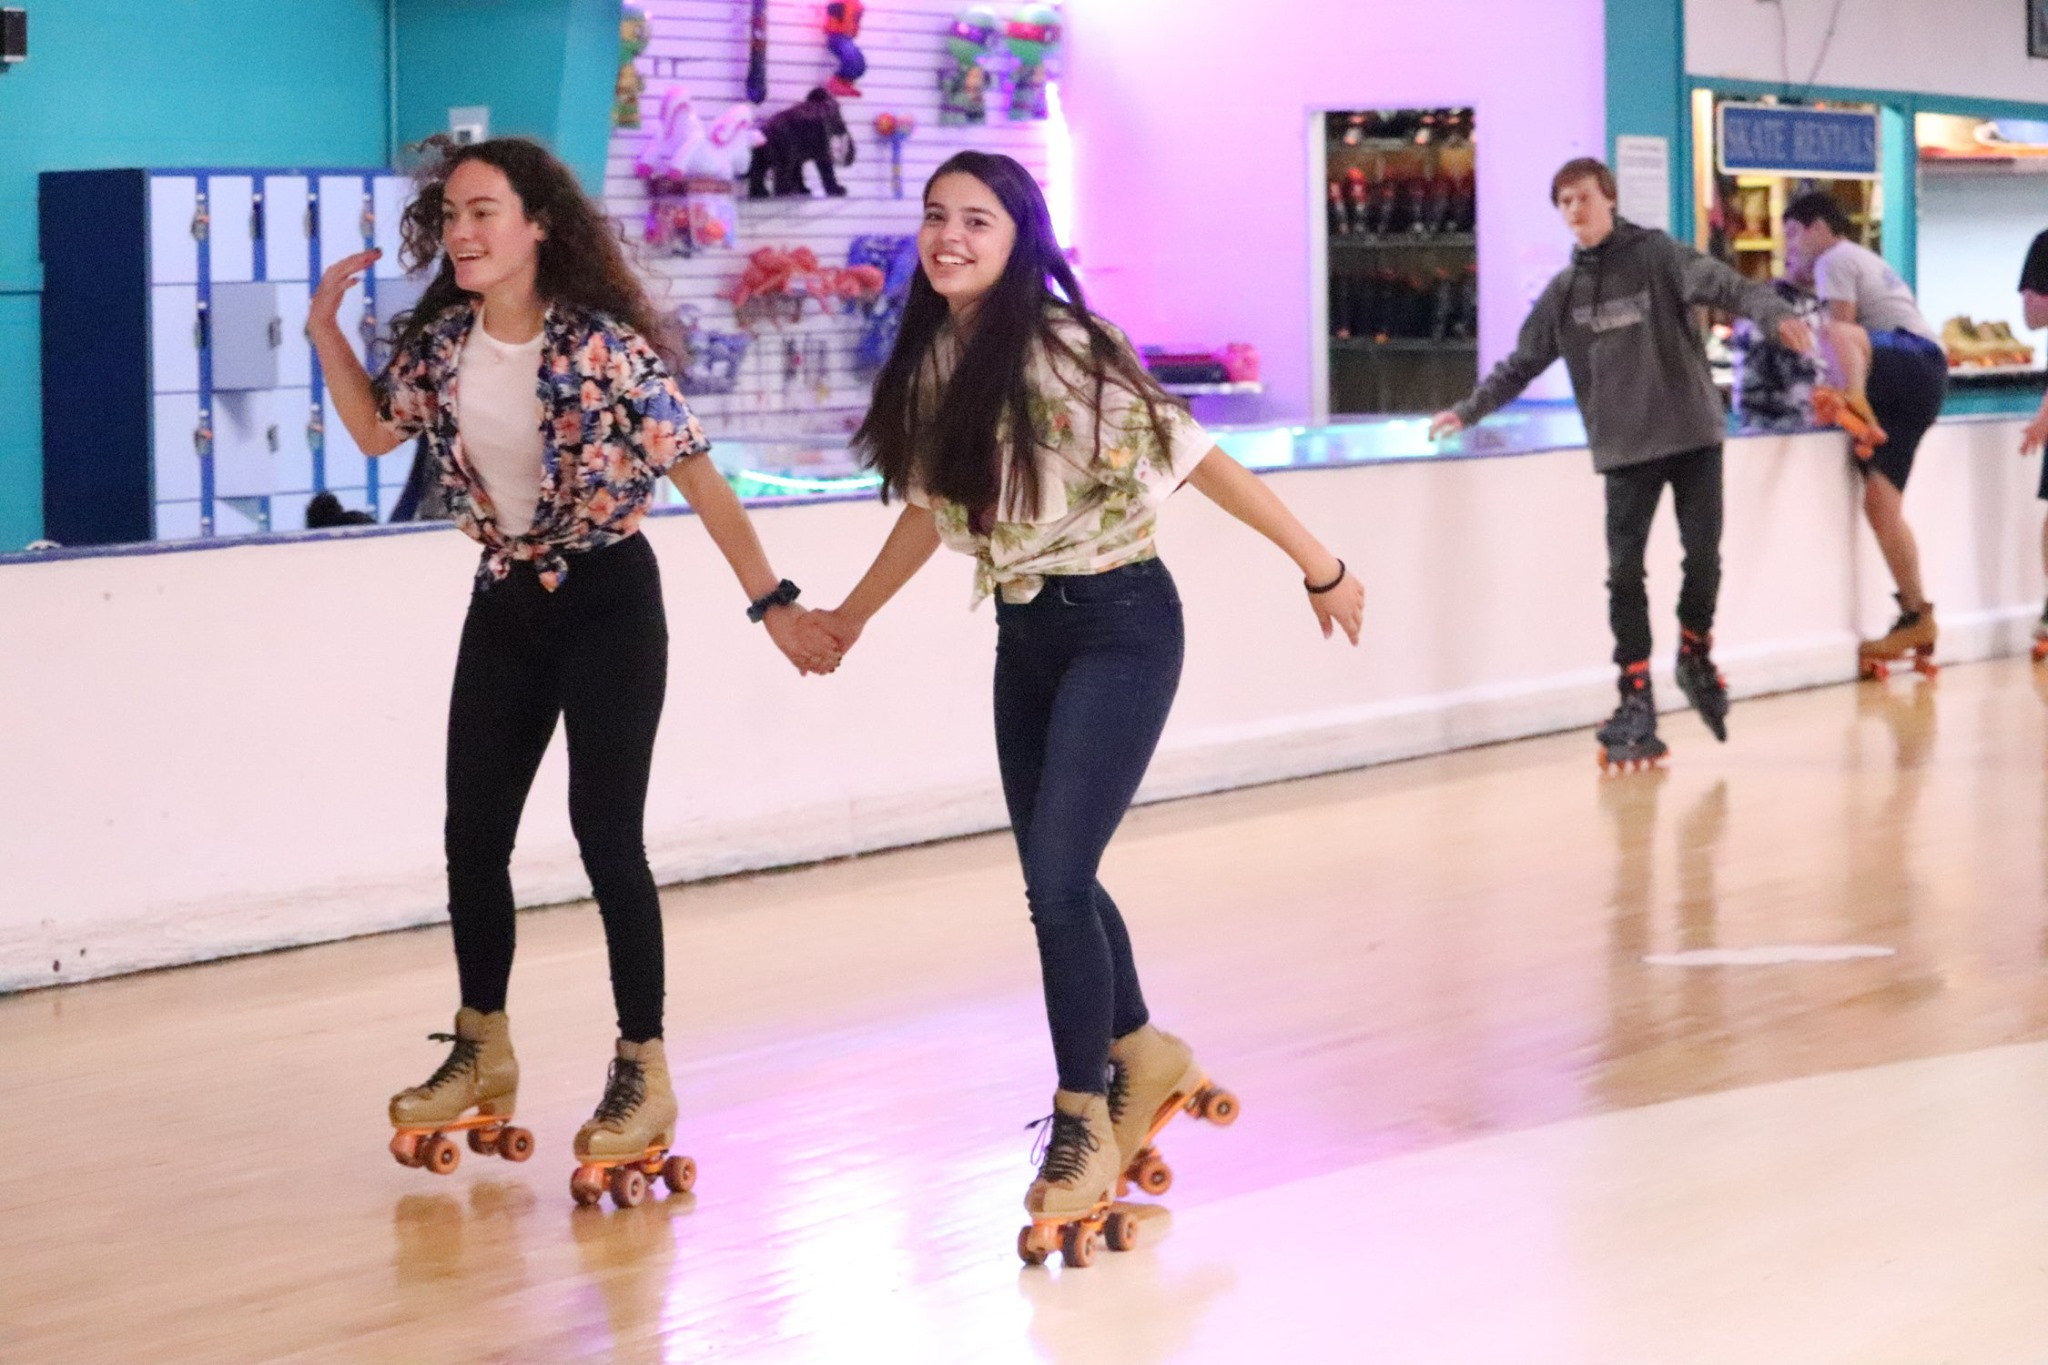 Two girls skating and holding hands